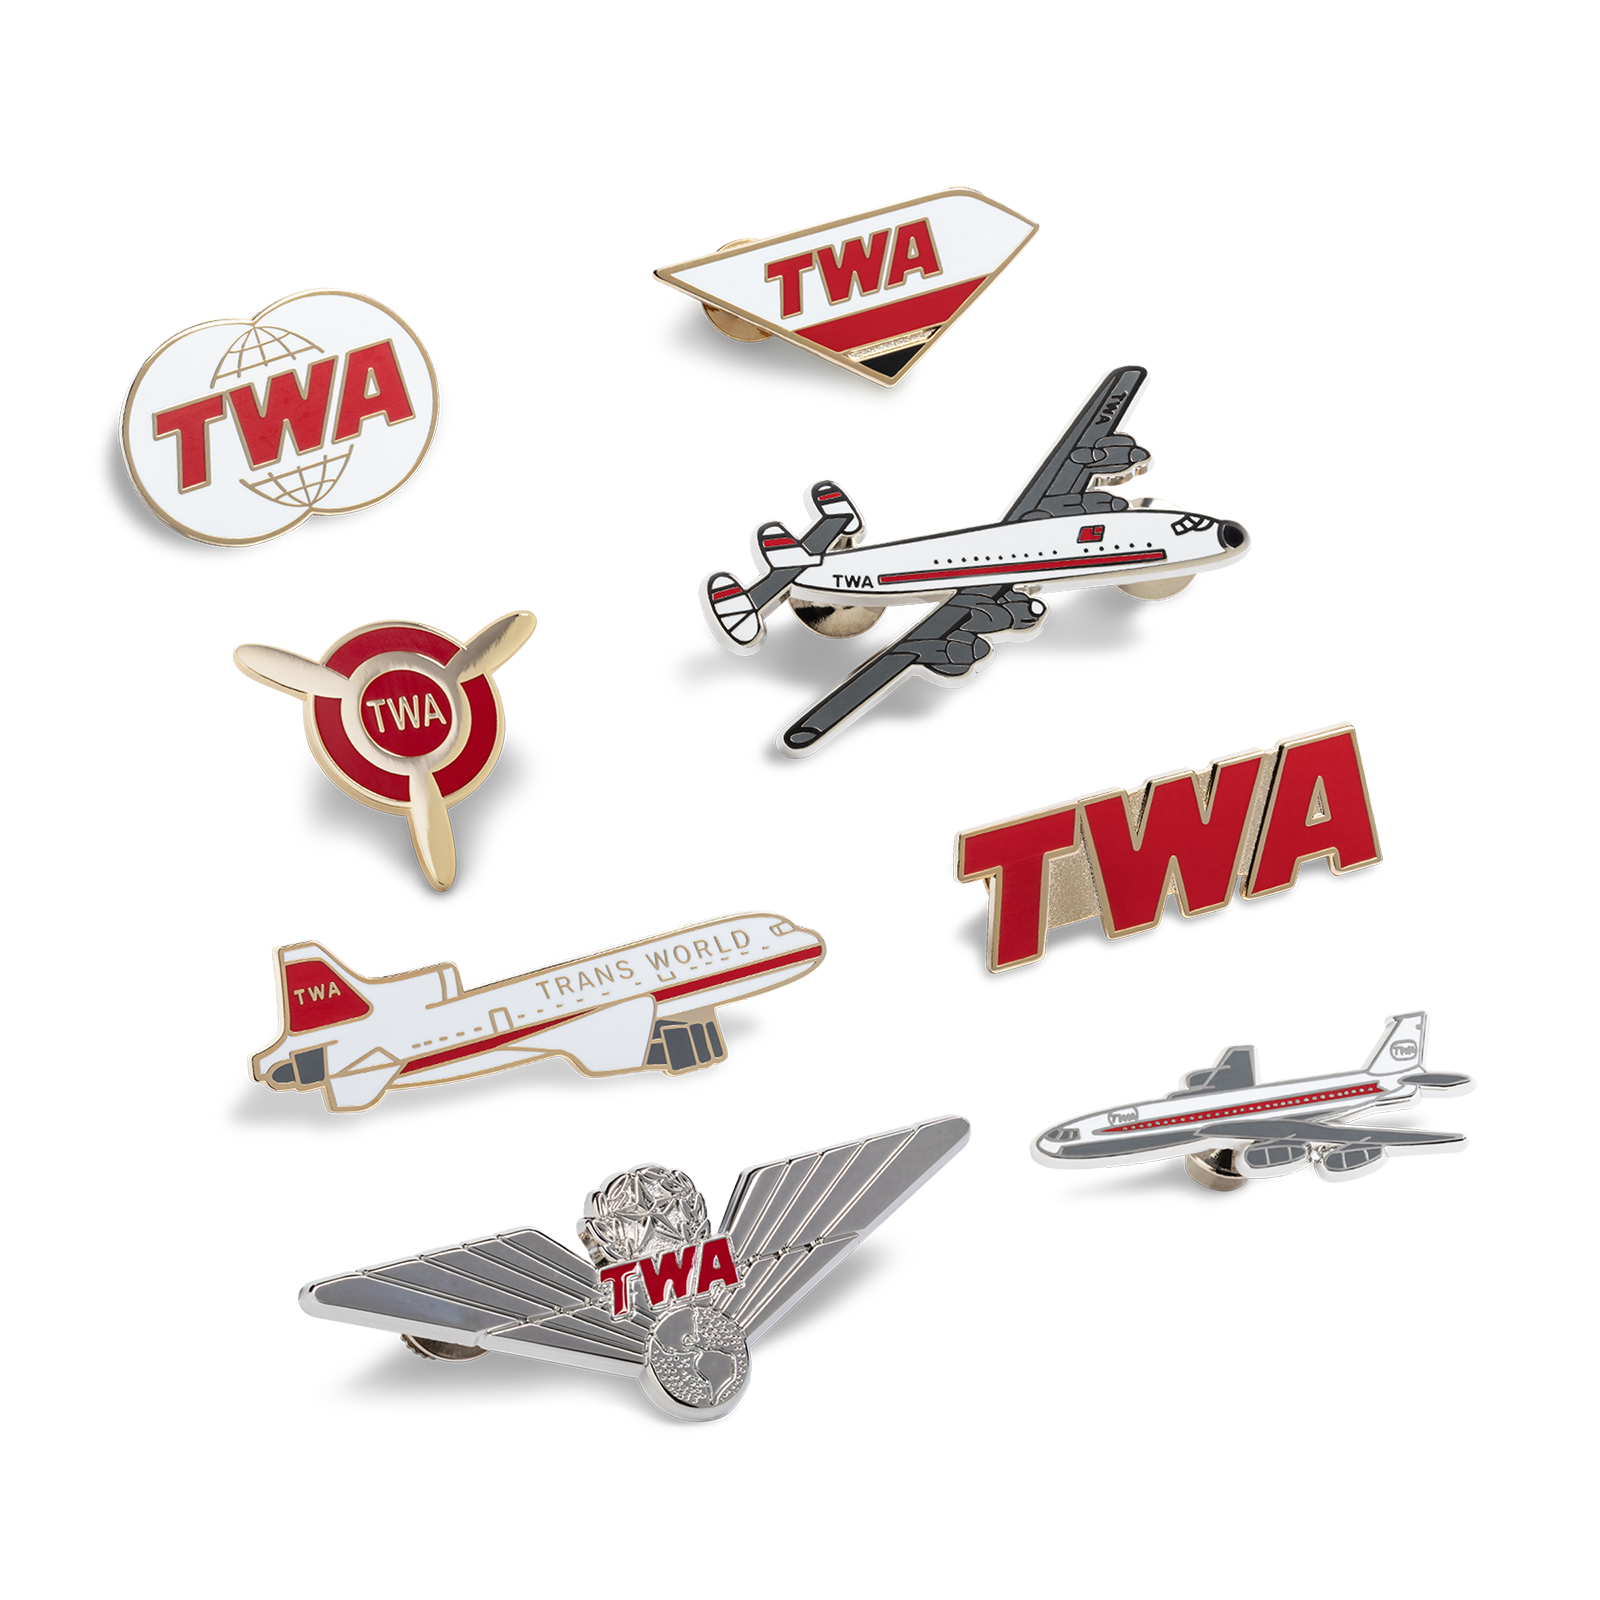 Pins set product image